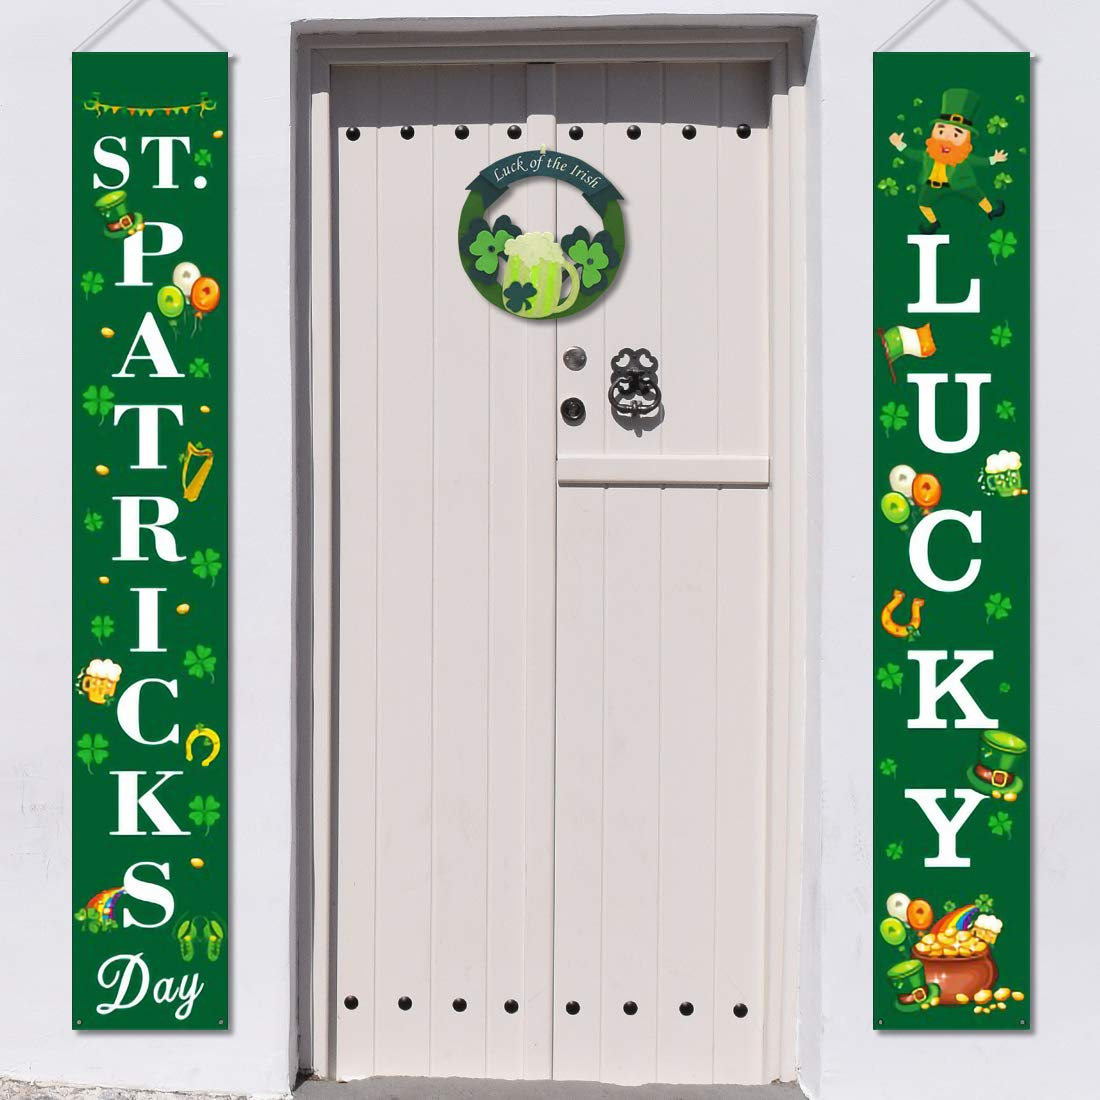 St Patricks Porch Sign St Patrick Day Banner with Happy St Patricks